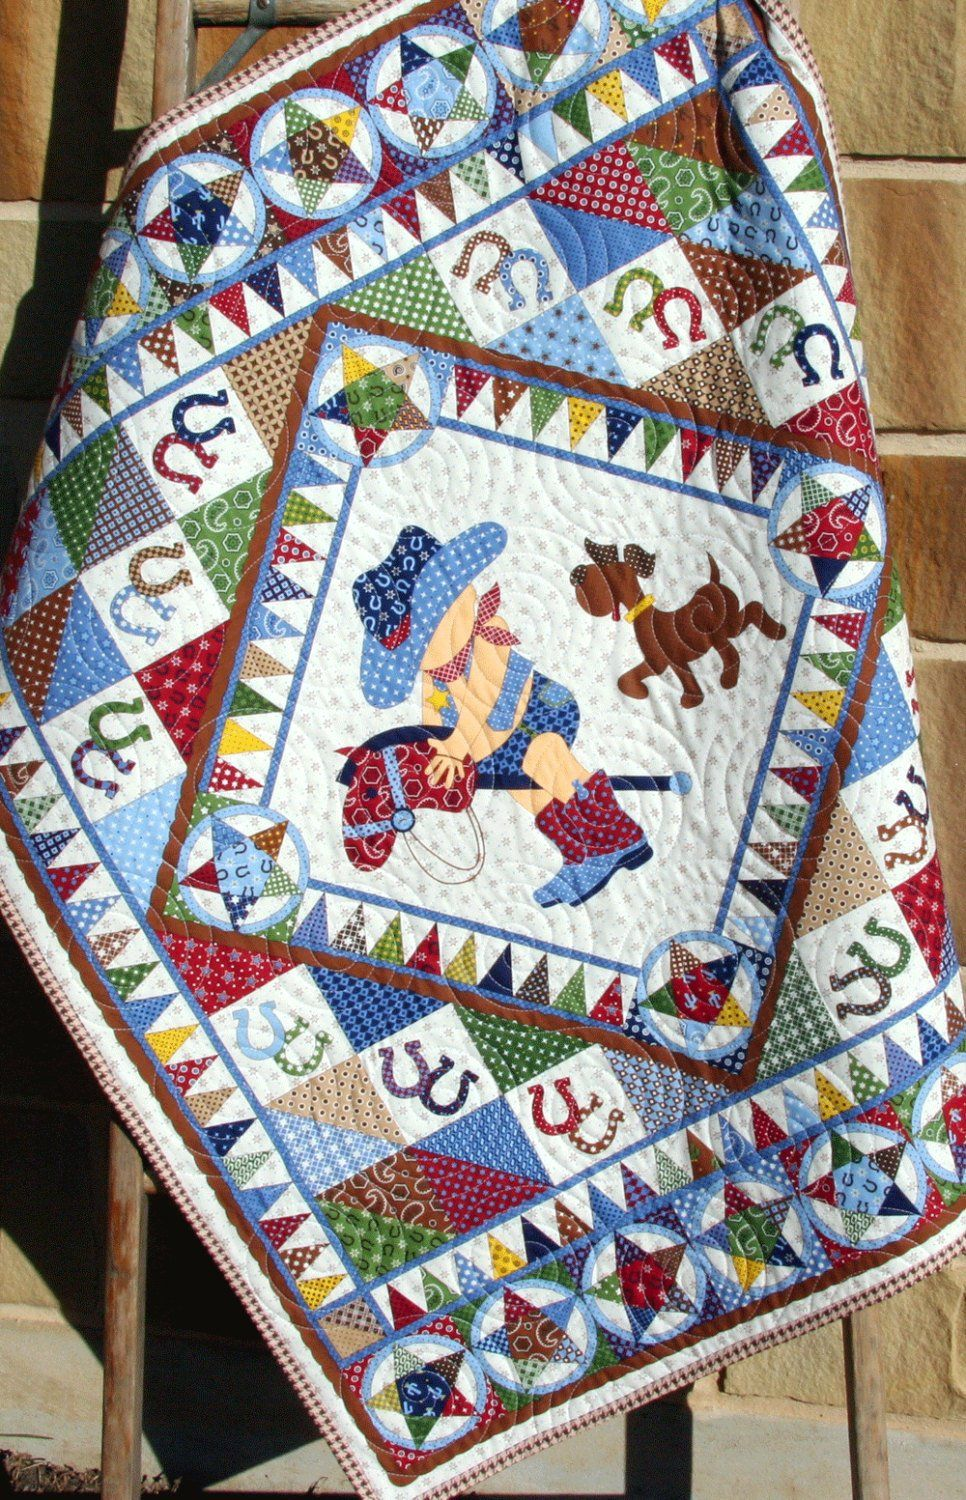 Cowboy Quilt Western Bandana Boy Blanket By Sunnysidedesigns2 Cowboy Quilt Horse Quilt Boys Quilt Patterns